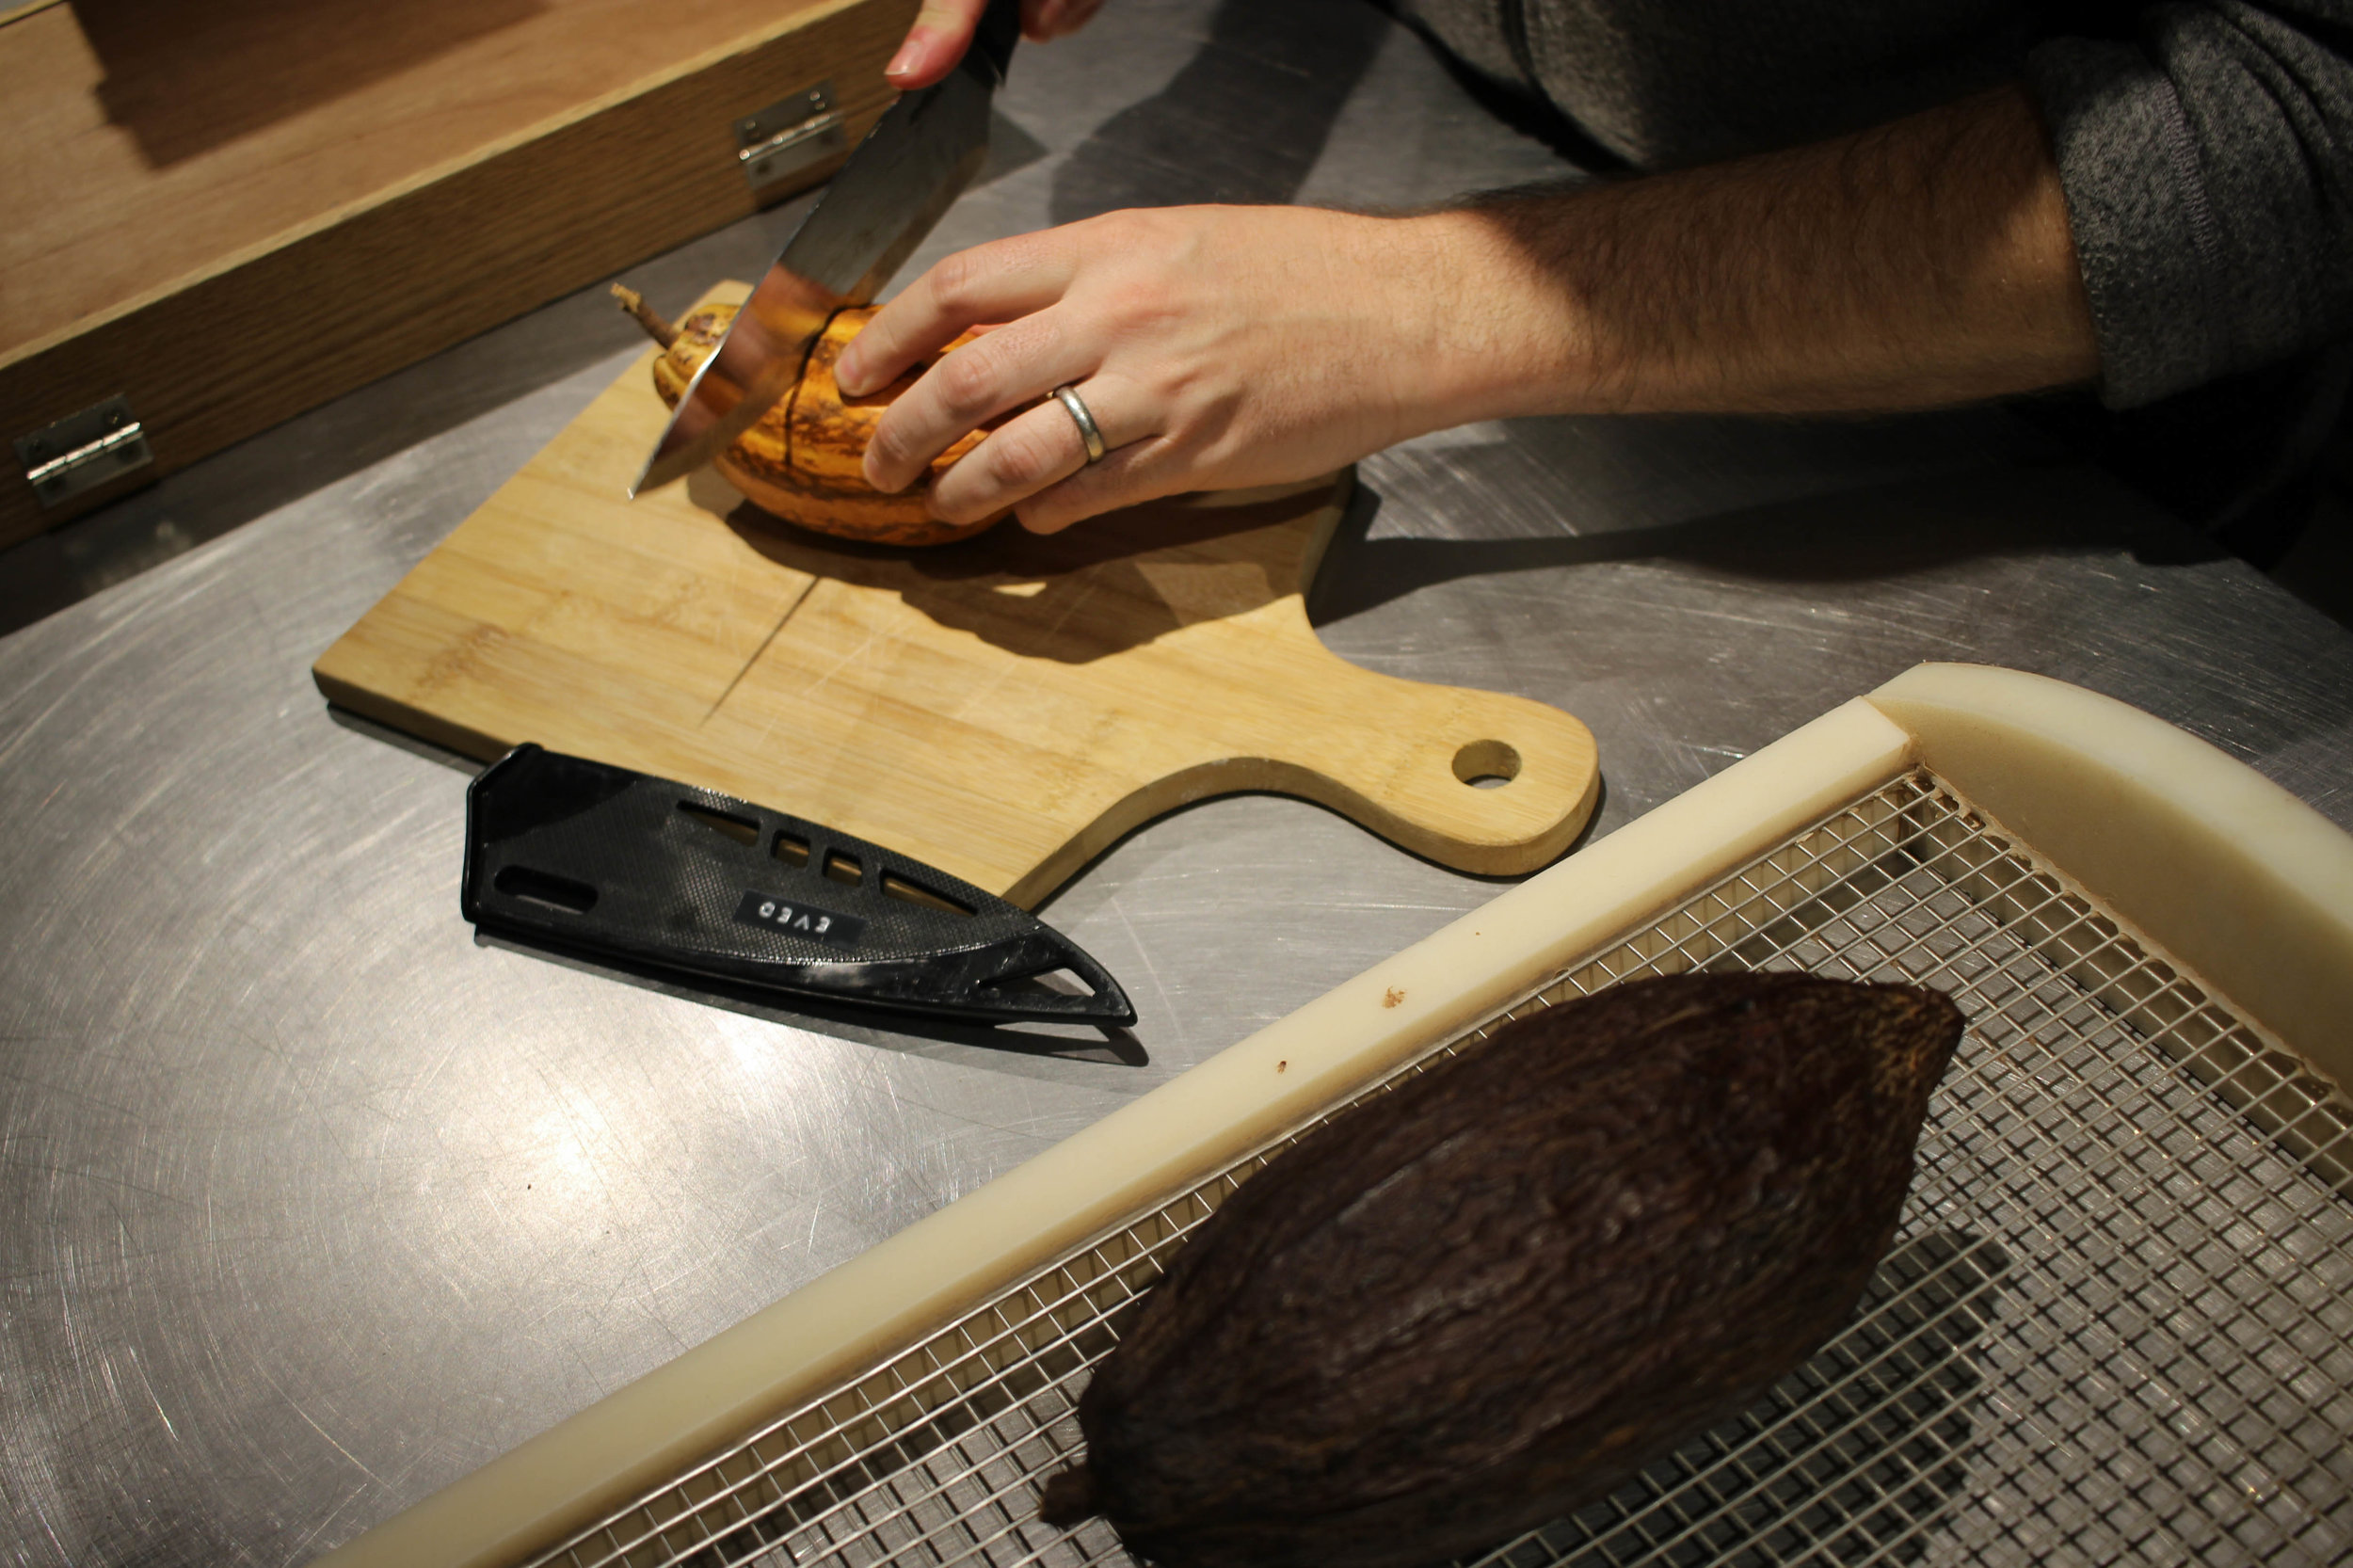 Cutting into a fresh cocoa pod. The dark one on the grate is a dried cocoa pod.